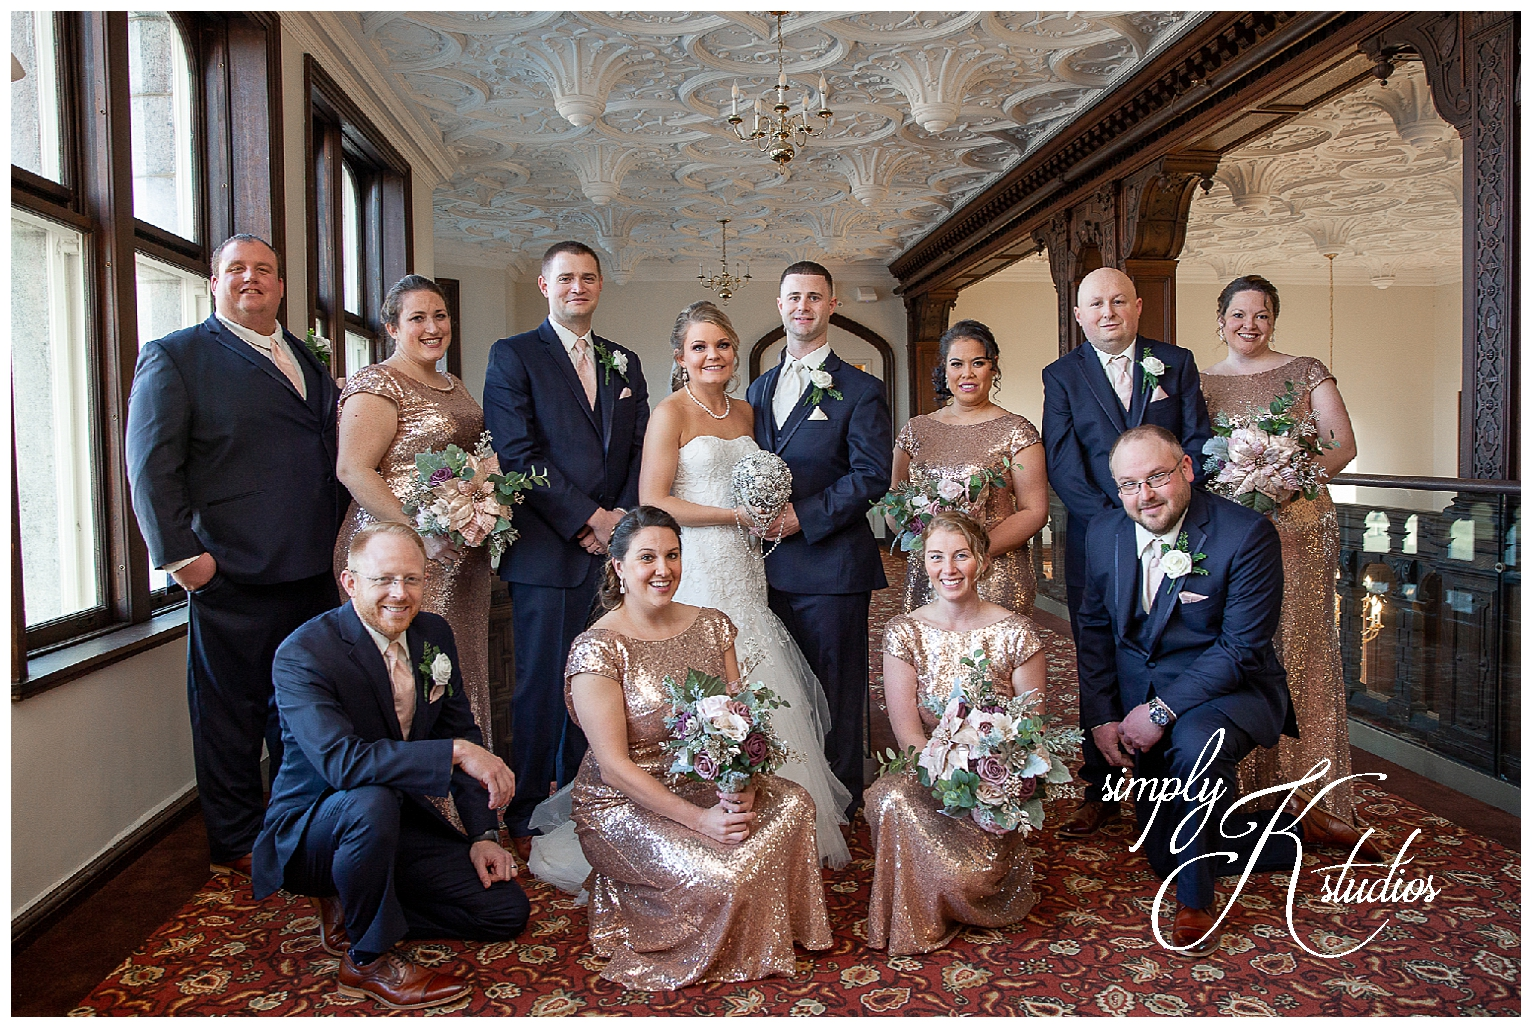 41 Wedding Photos at The Branford House in Connecticut.jpg